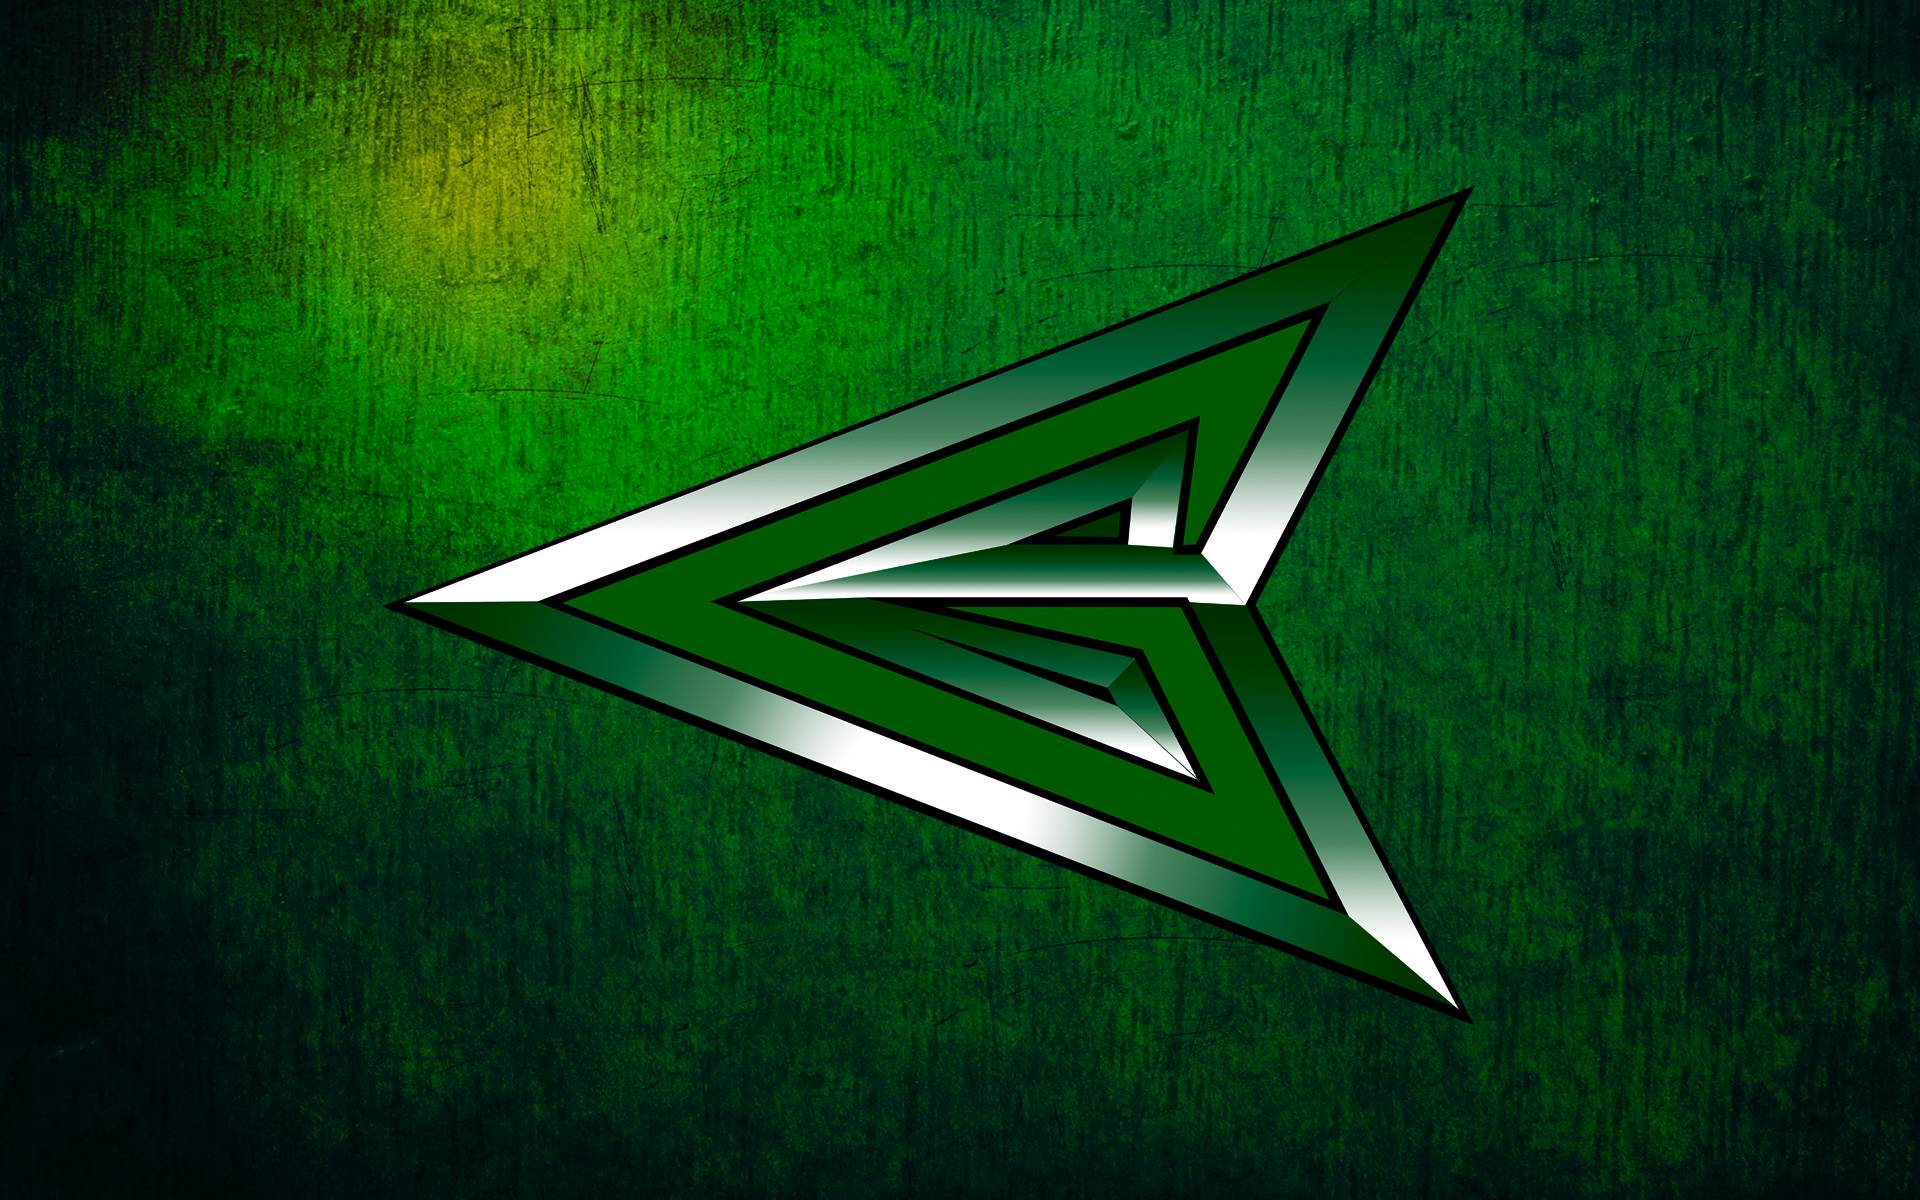 Wallpapers For > Green Arrow Wallpapers